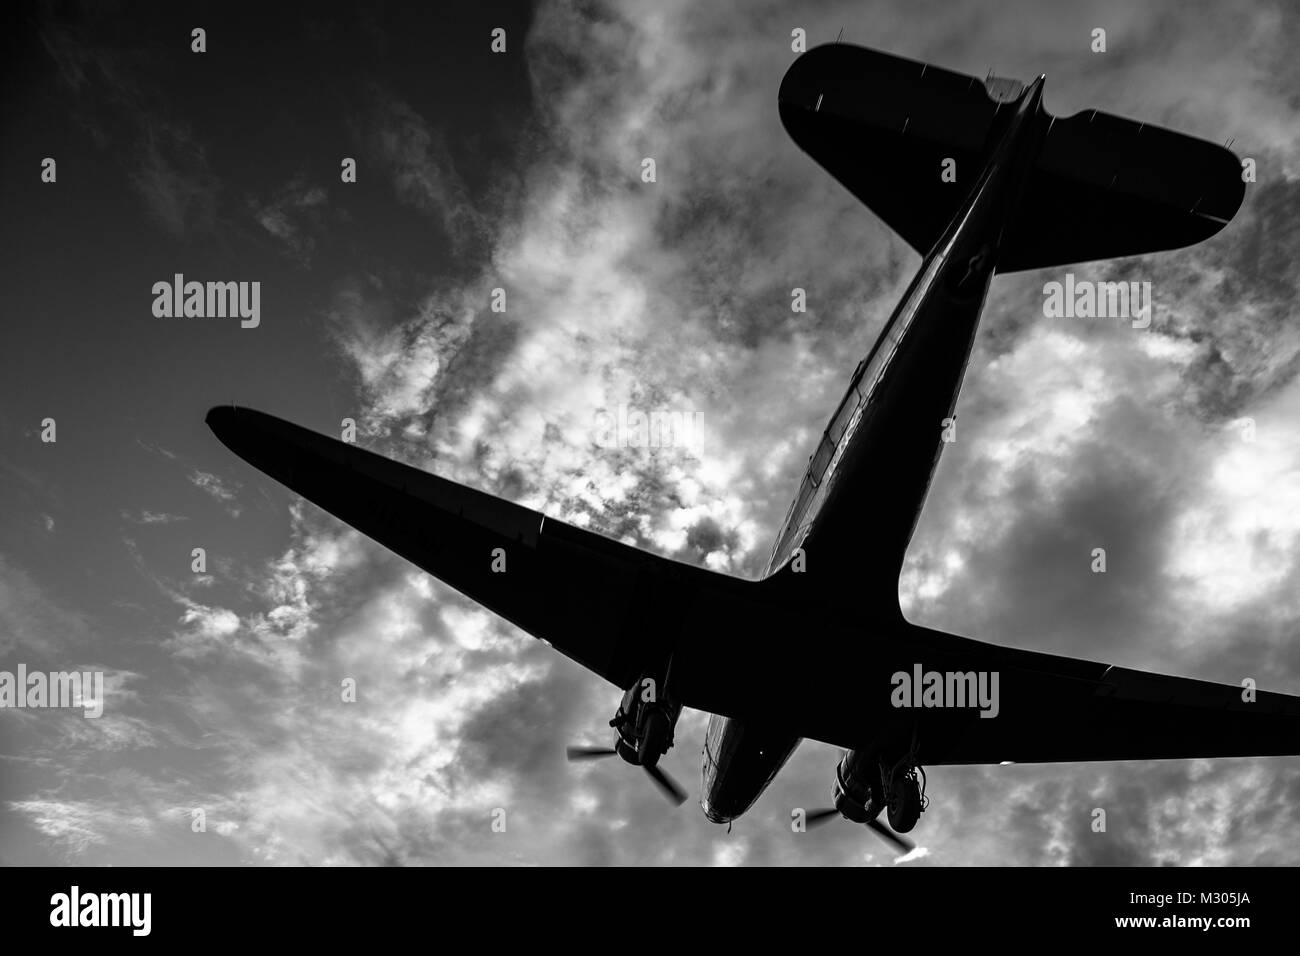 A Douglas DC-3 aircraft is seen landing near the airport of Villavicencio, Colombia. - Stock Image